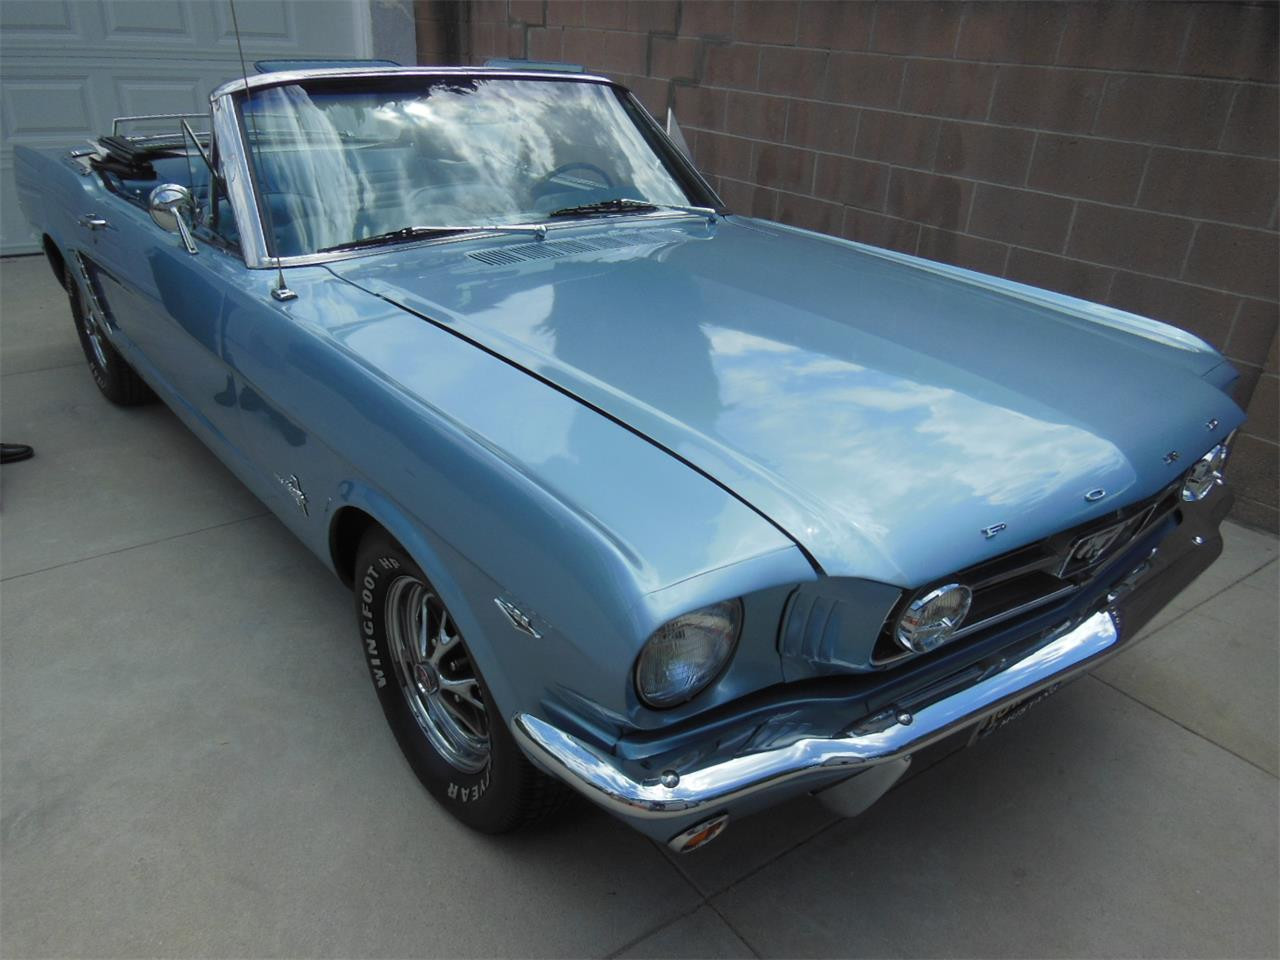 Large Picture of 1965 Ford Mustang located in California - $29,900.00 - Q1U8